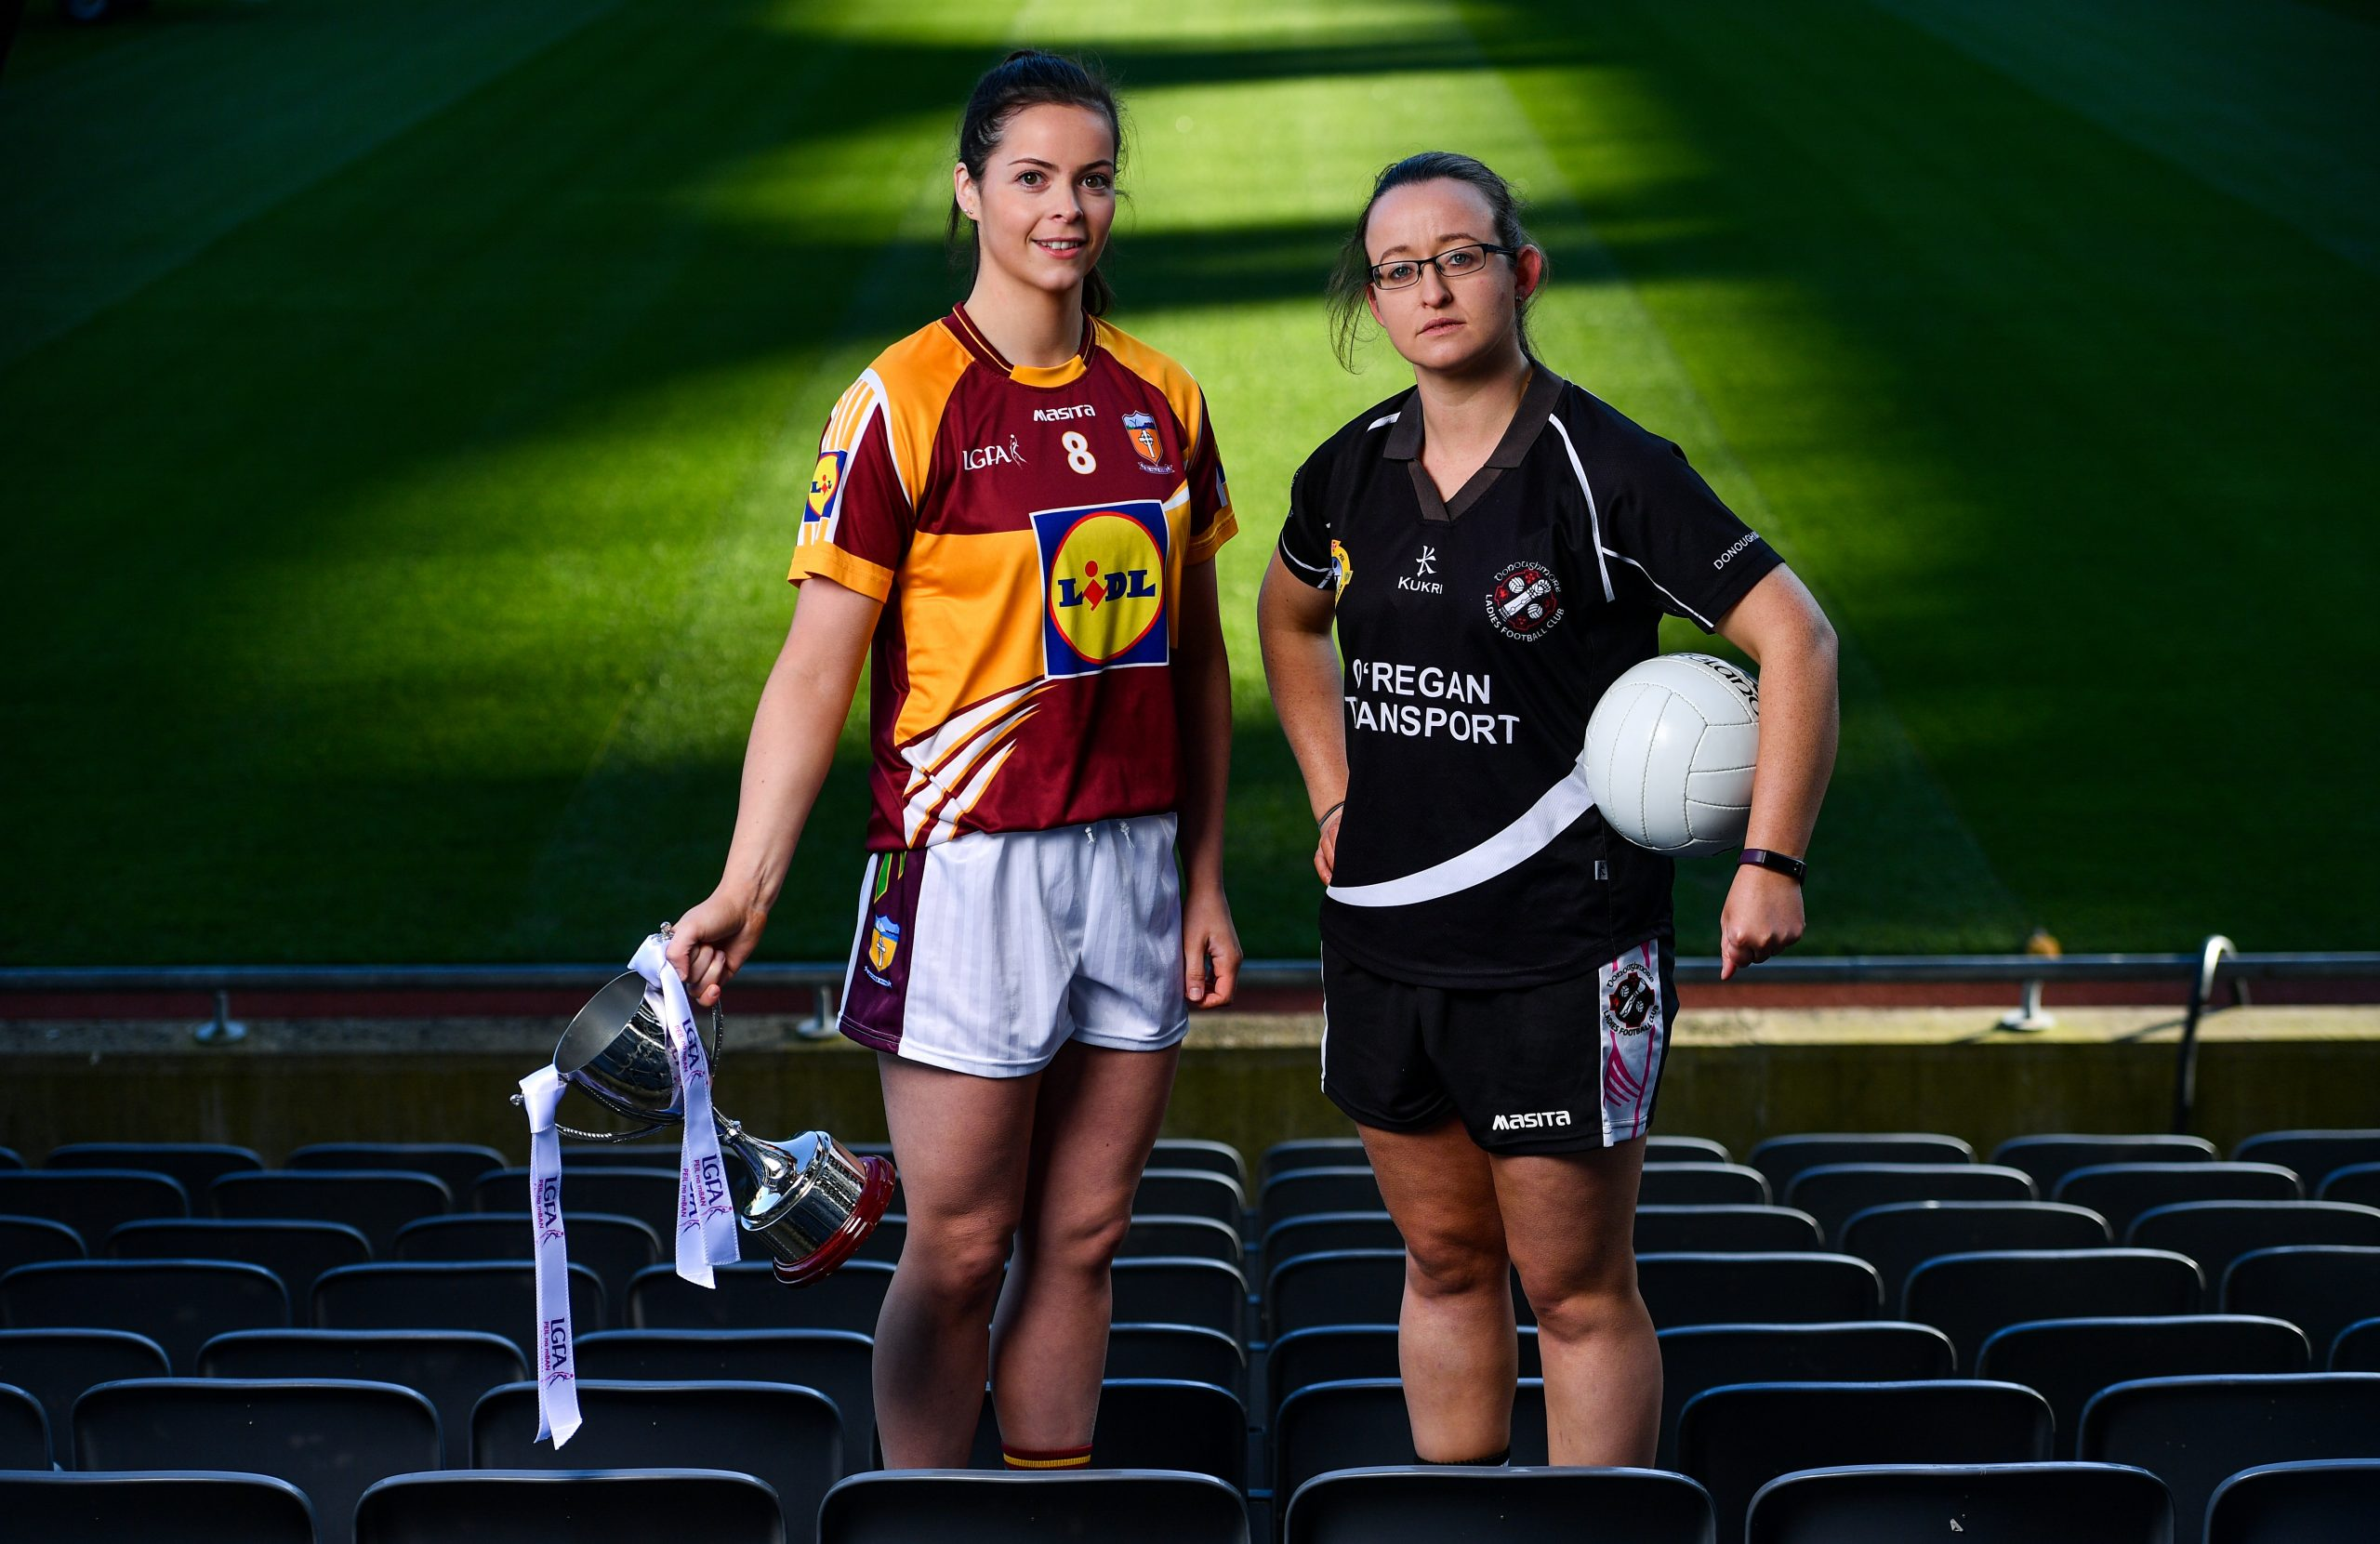 Captains, Marie Larkin of CL MacHale Rovers, left, and Eileen Lyons of Donoughmore,